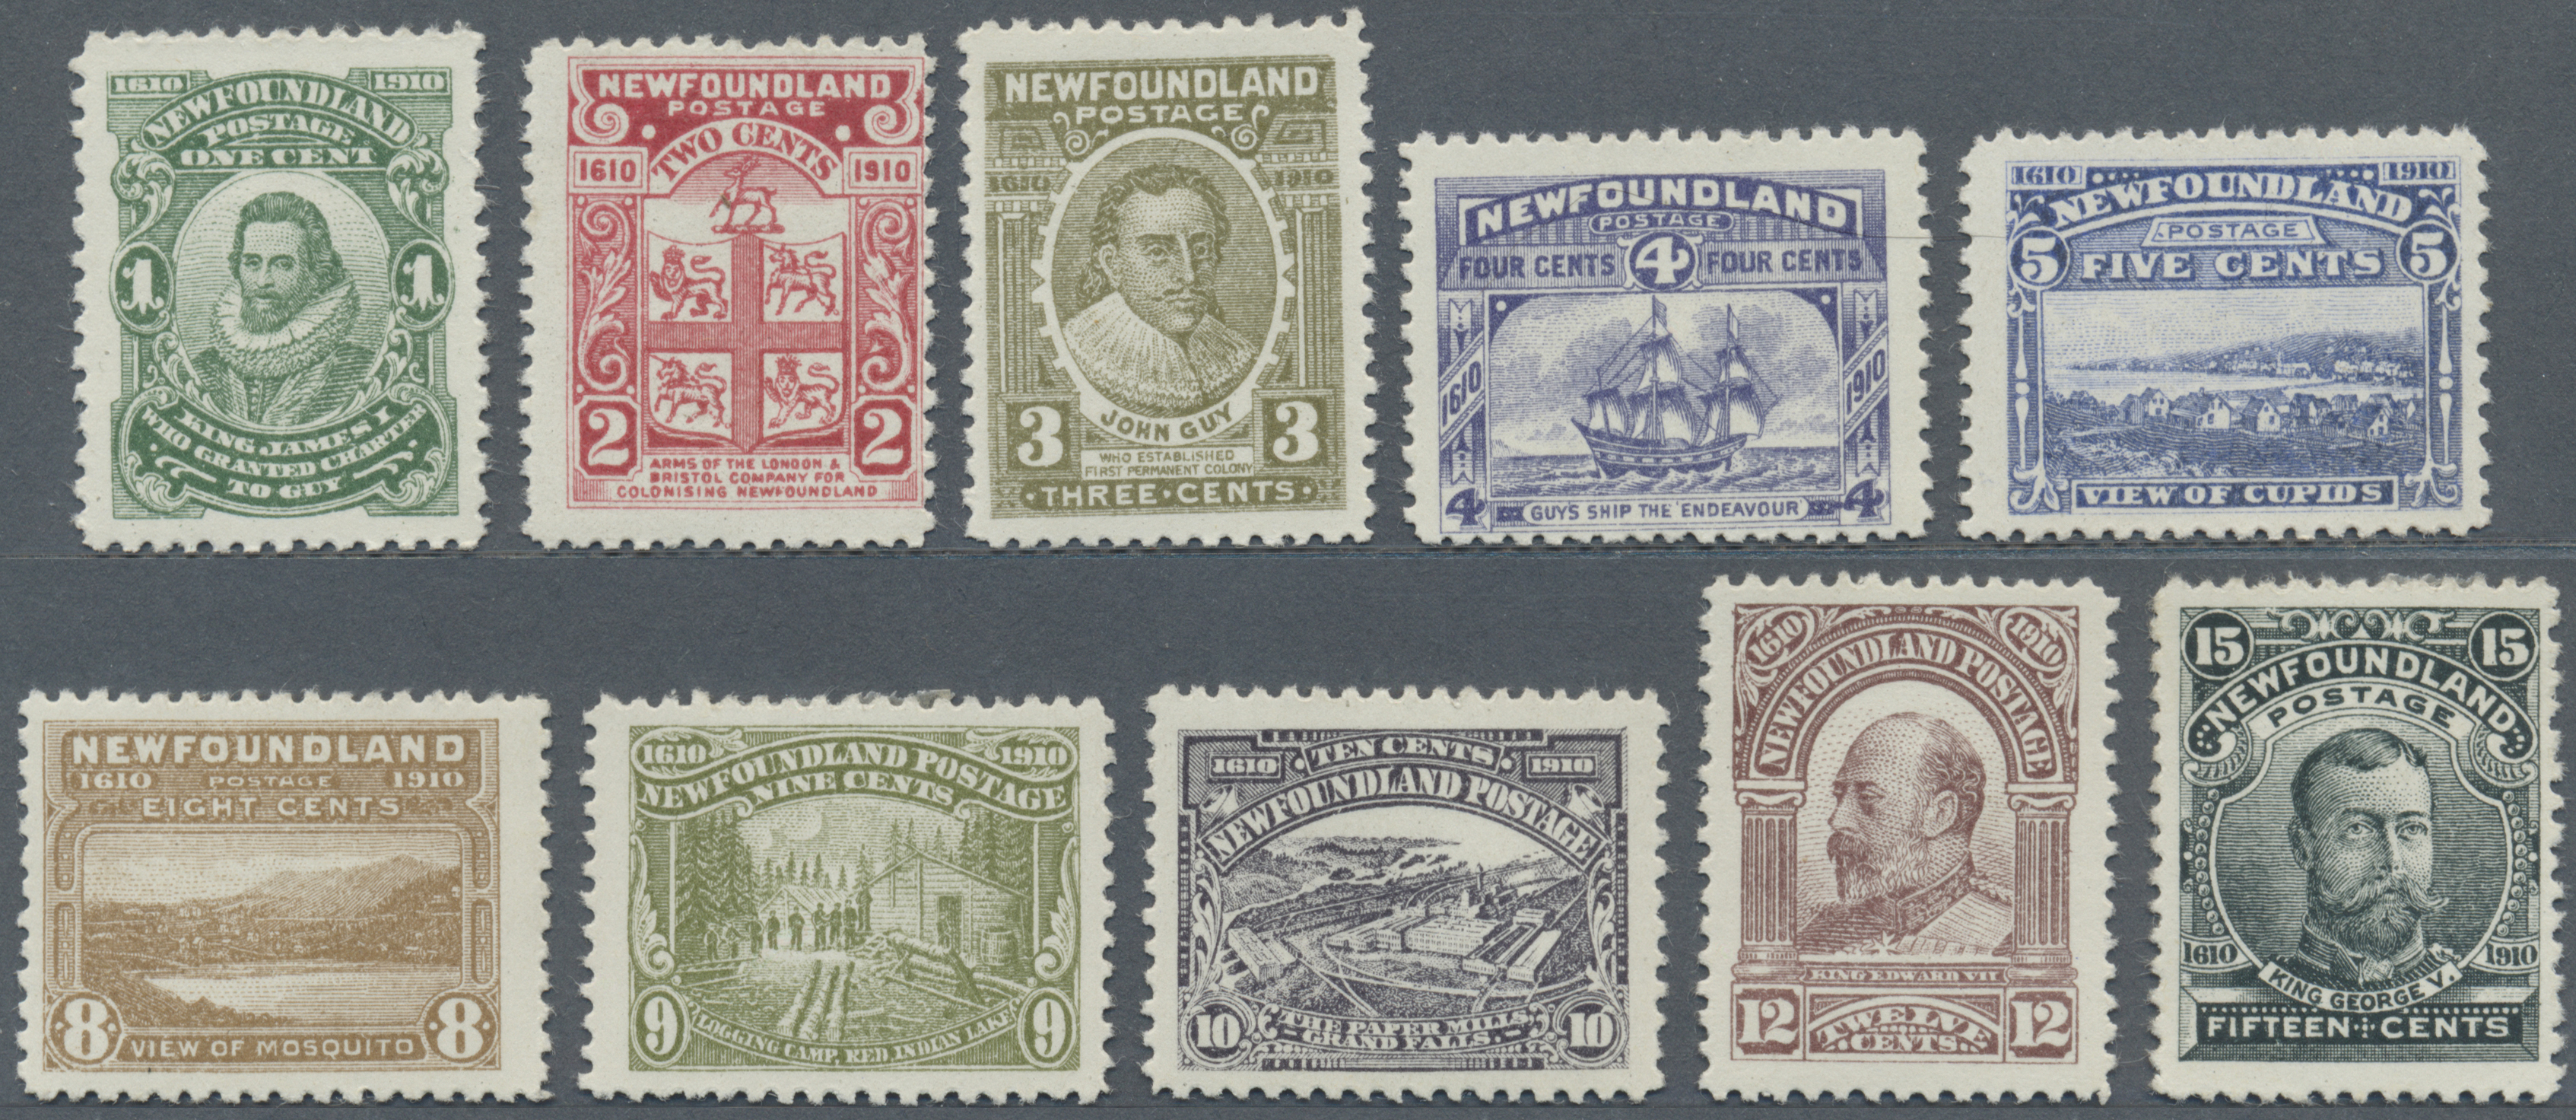 Lot 26103 - nachlässe  -  Auktionshaus Christoph Gärtner GmbH & Co. KG Sale #46 Gollcetions Germany - including the suplement